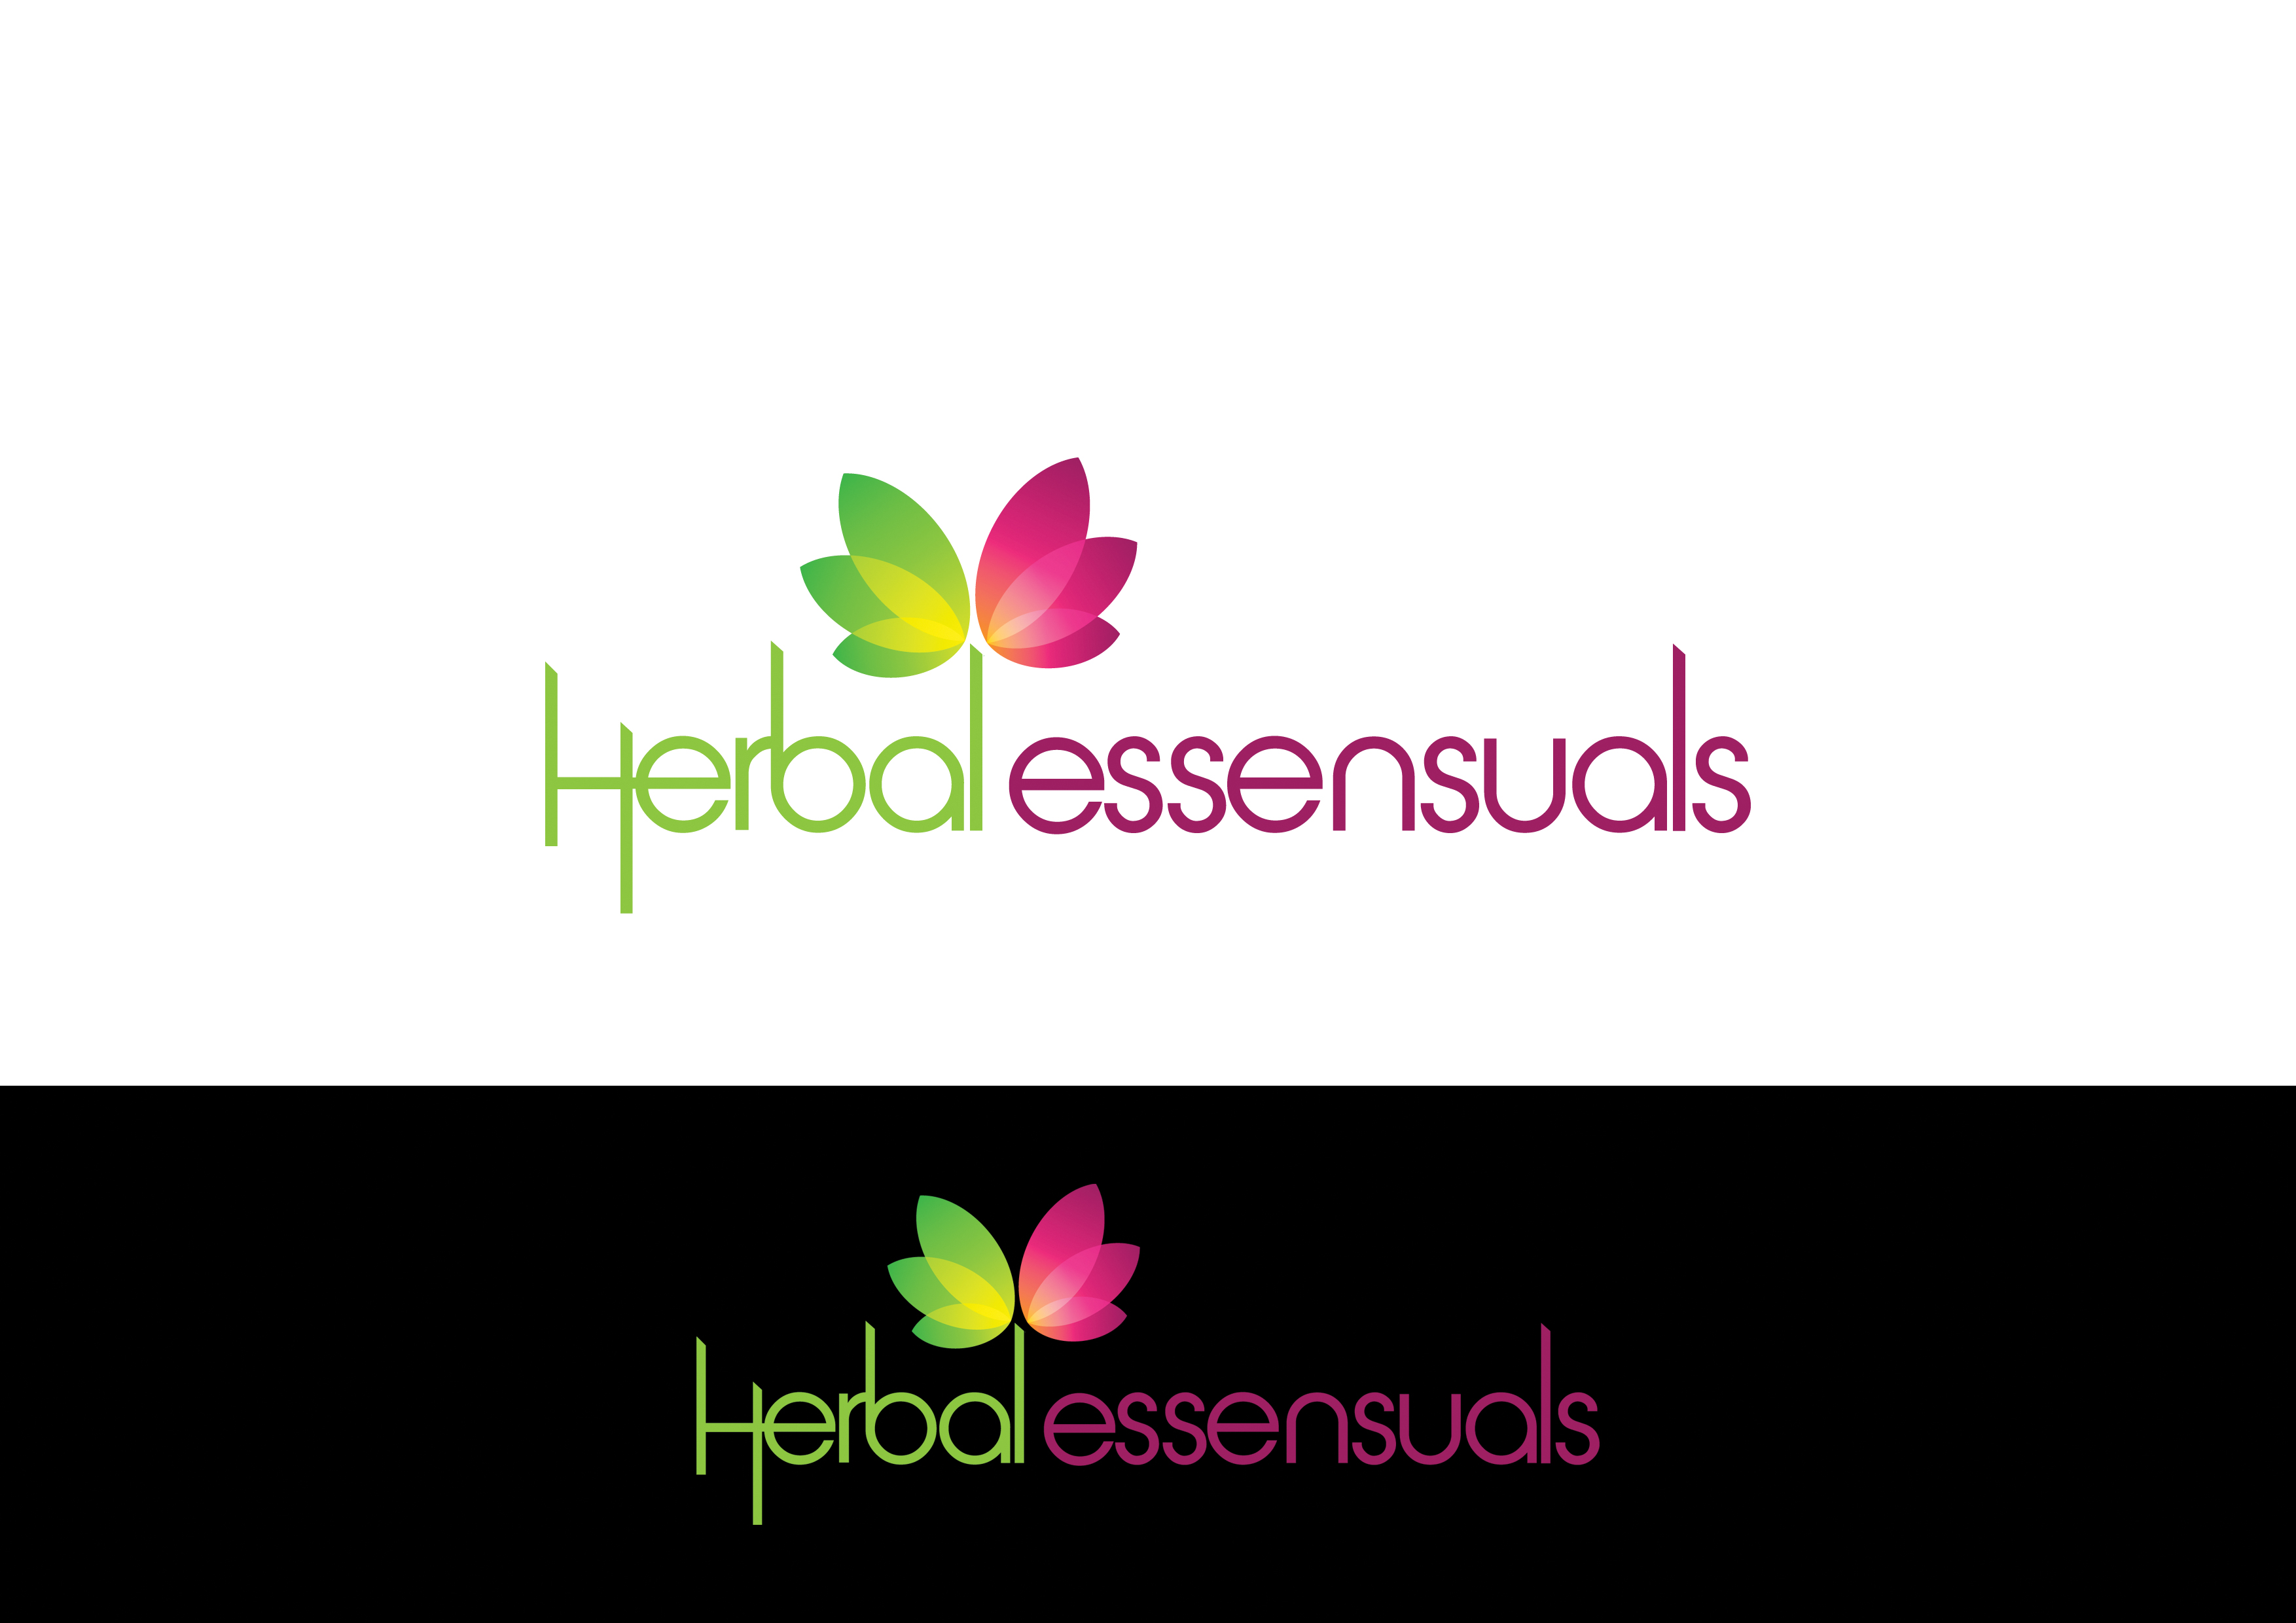 Logo Design by cochinseng - Entry No. 86 in the Logo Design Contest Captivating Logo Design for Herbal Essensuals.